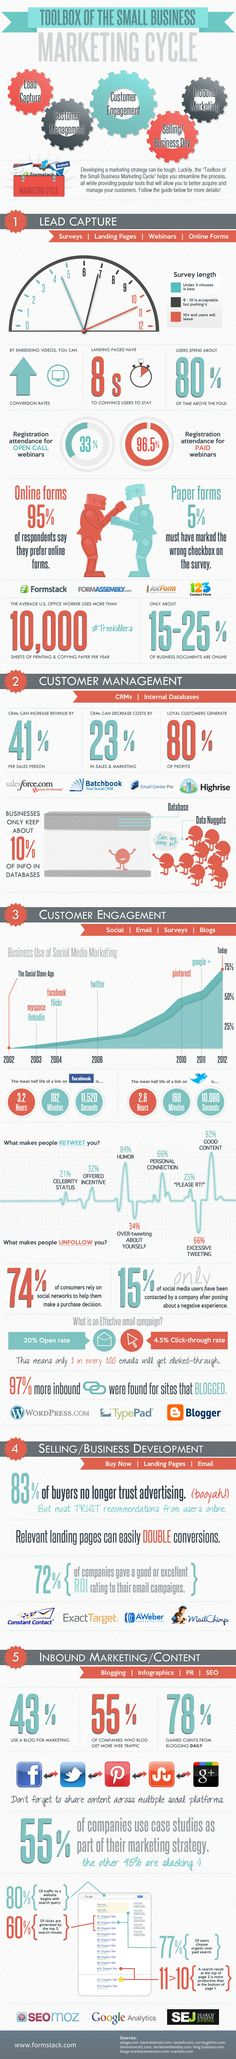 Toolbox of the SMB marketing cycle infographic from Formstack - some great stats!